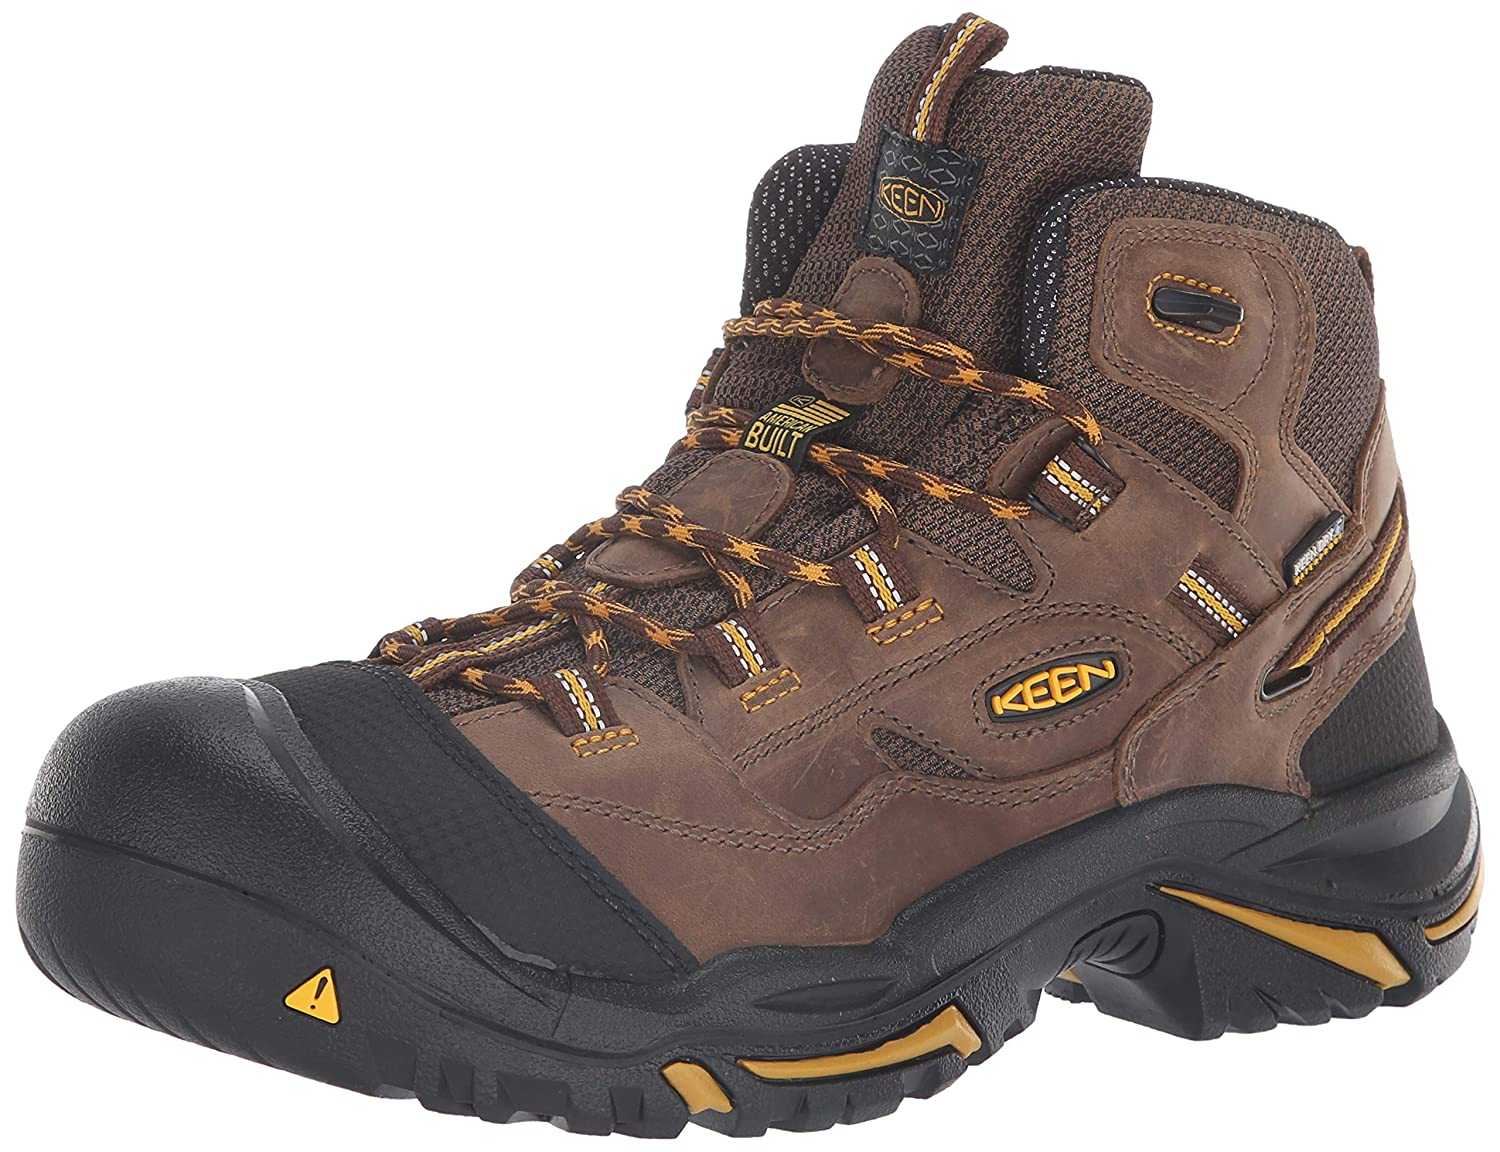 fe52718a13d KEEN Utility - Men's Braddock Mid (Soft Toe) Waterproof Work Boot ...